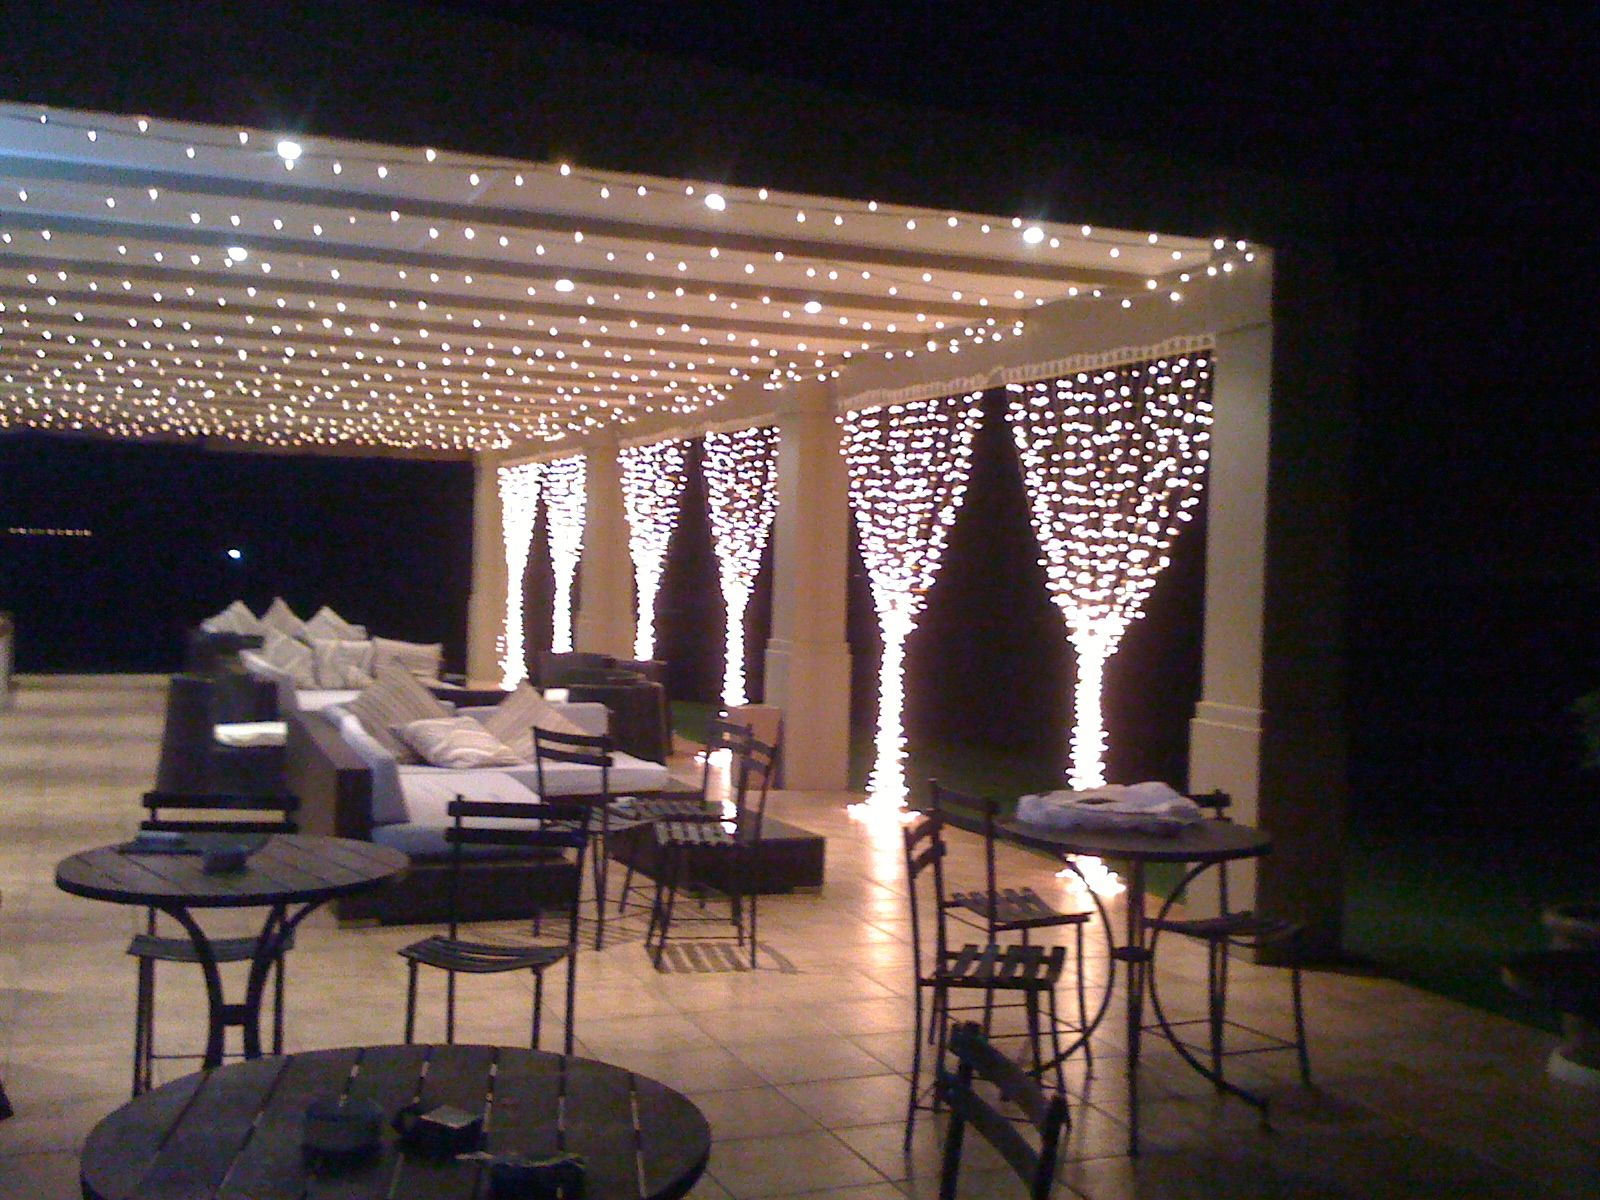 The Curtain Of Fairy Lights On The Patio